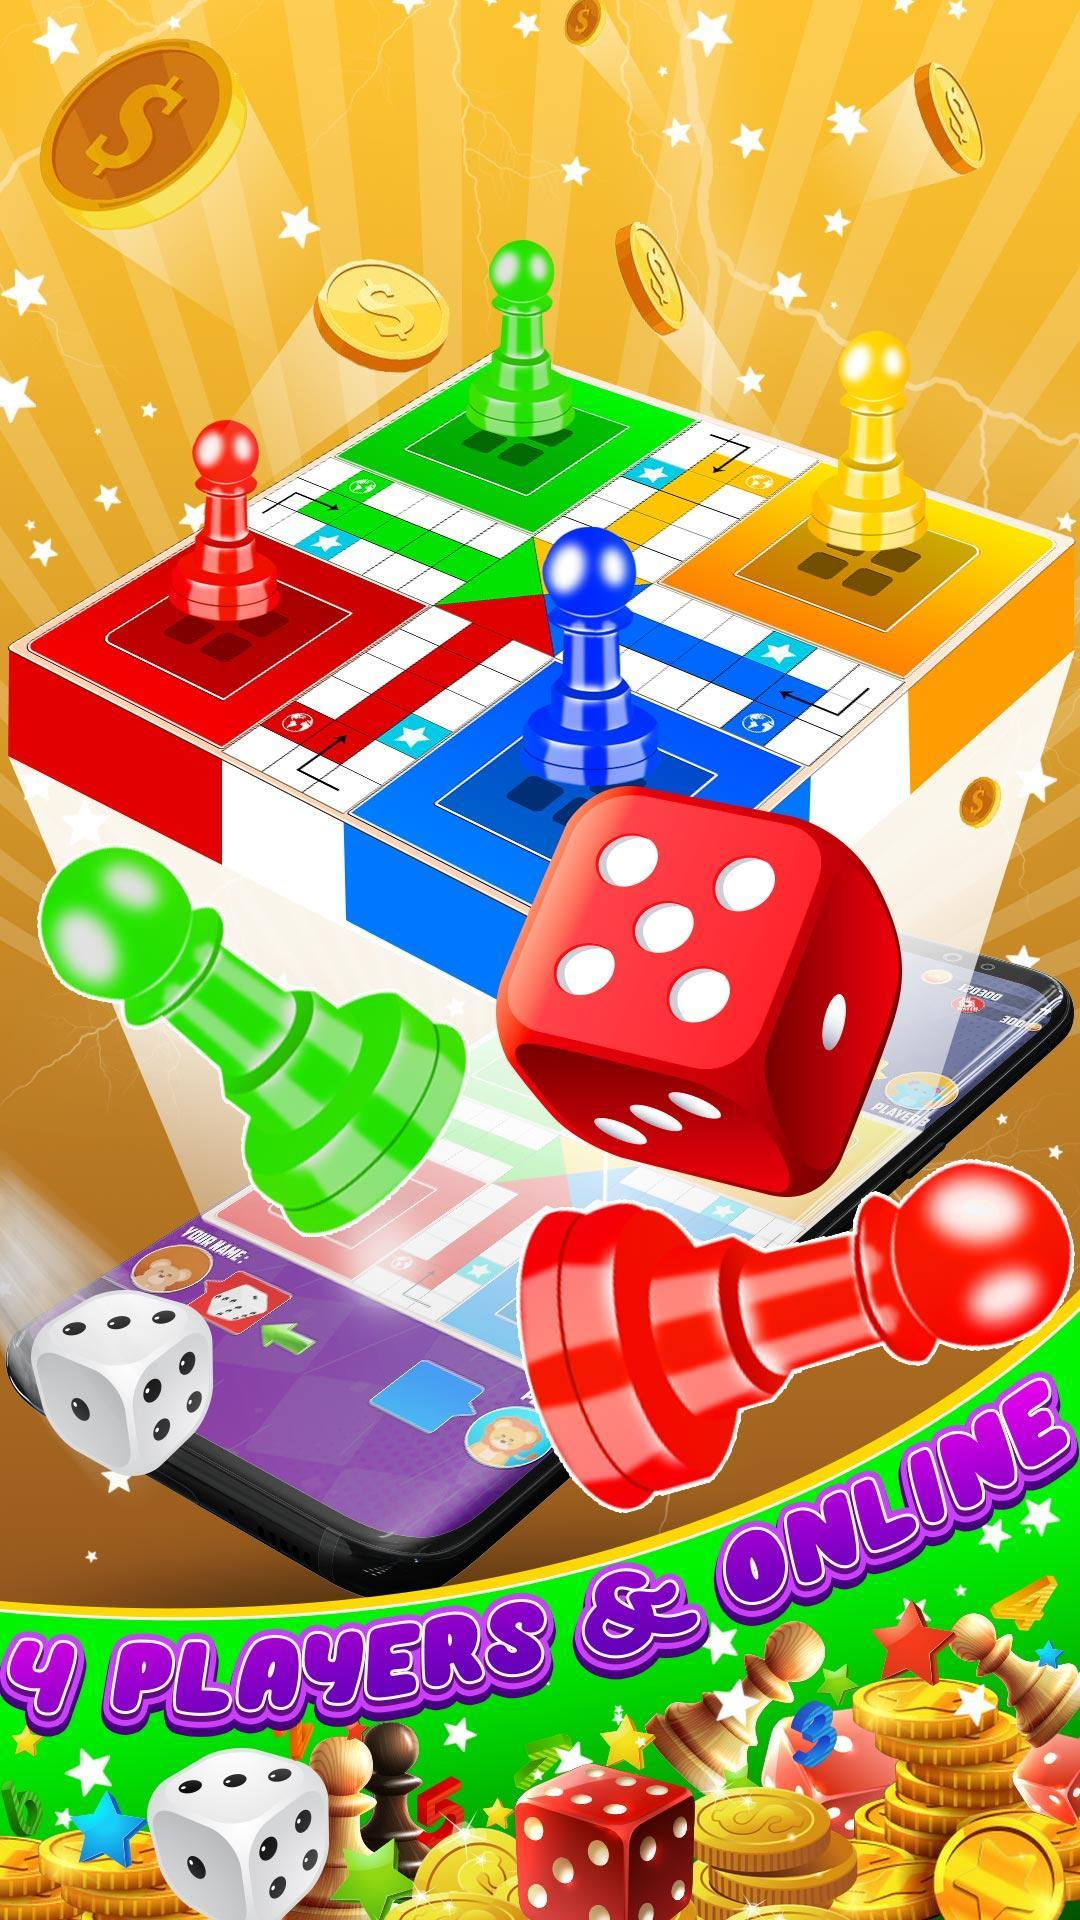 King of Ludo Dice Game with Free Voice Chat 2020 1.5.2 Screenshot 14